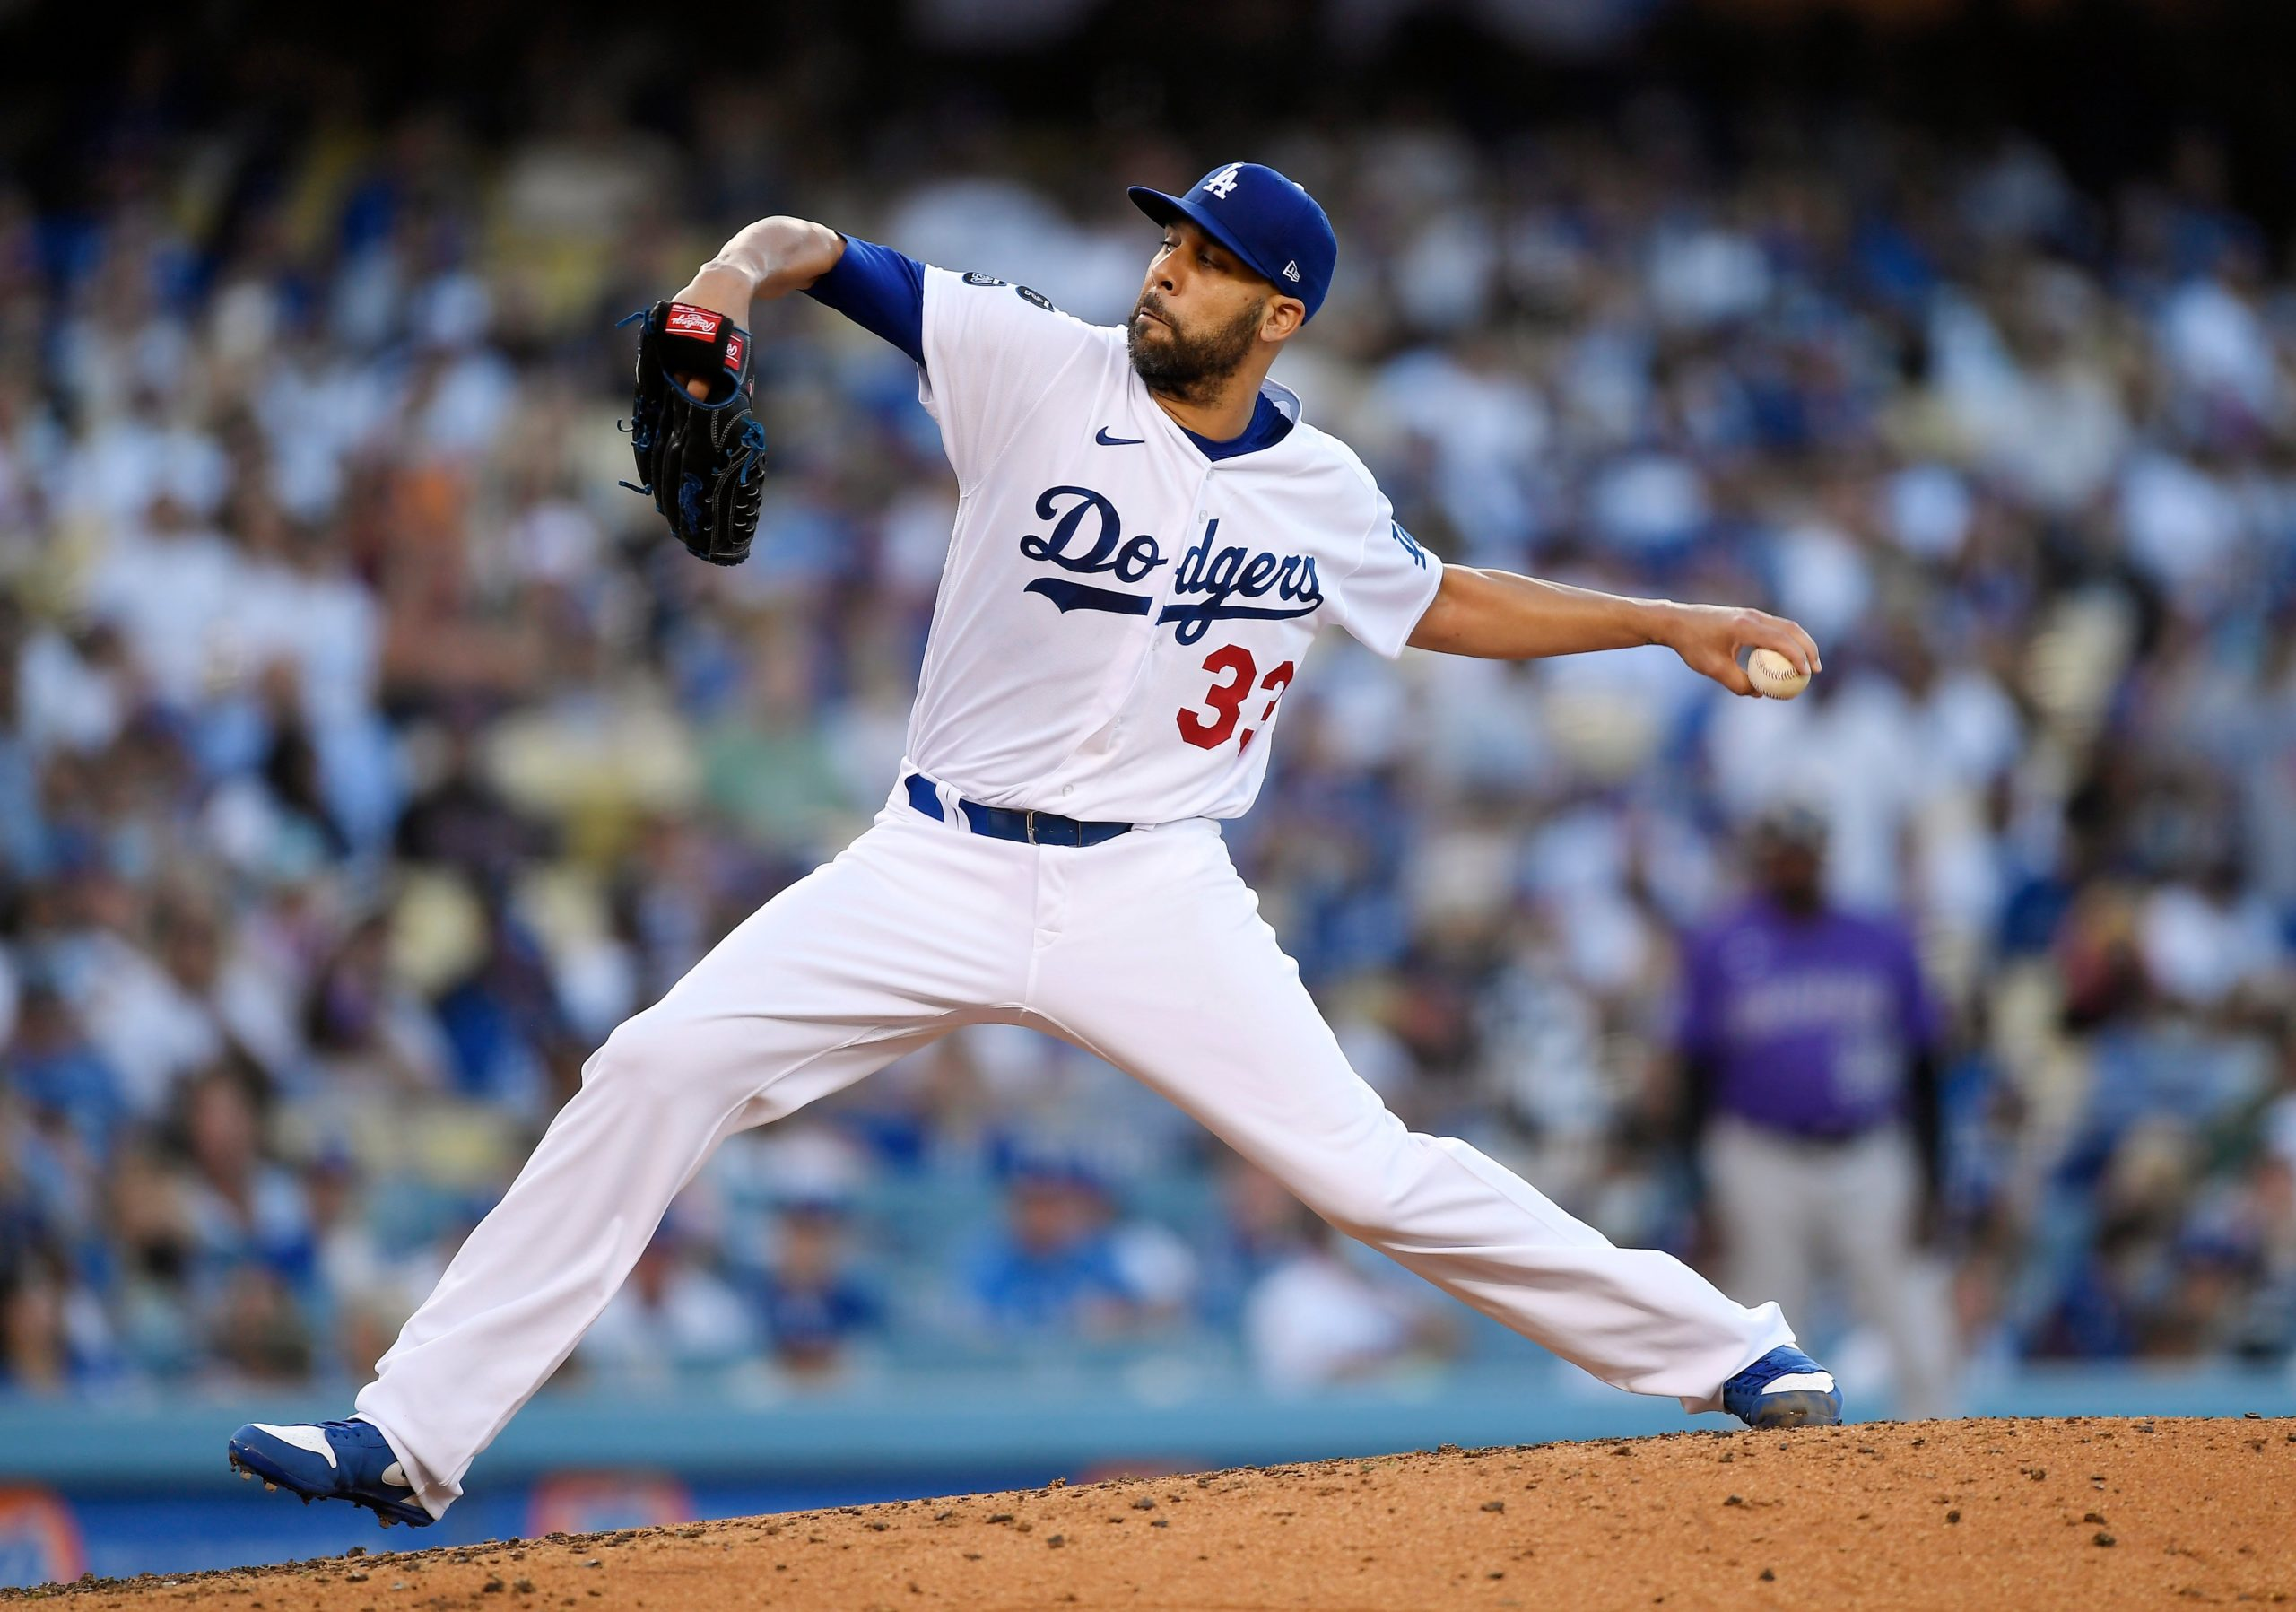 Dodgers Scratch Lefty David Price From Start With Arm Issue – NBC Los Angeles